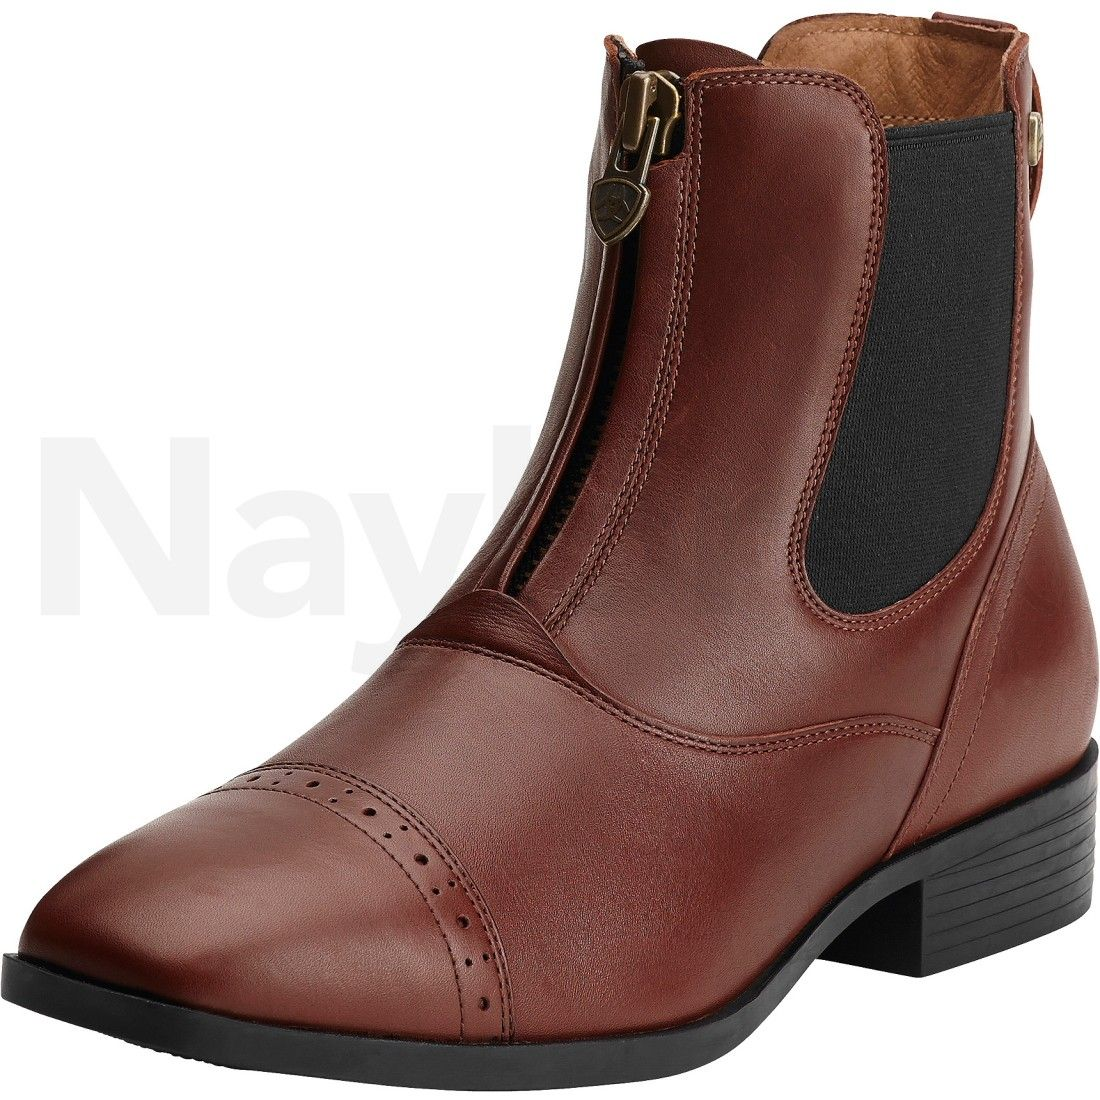 lowest discount picked up reasonable price Ariat Paddock boot Cognac   Riding Clothes ❤️ (English ...